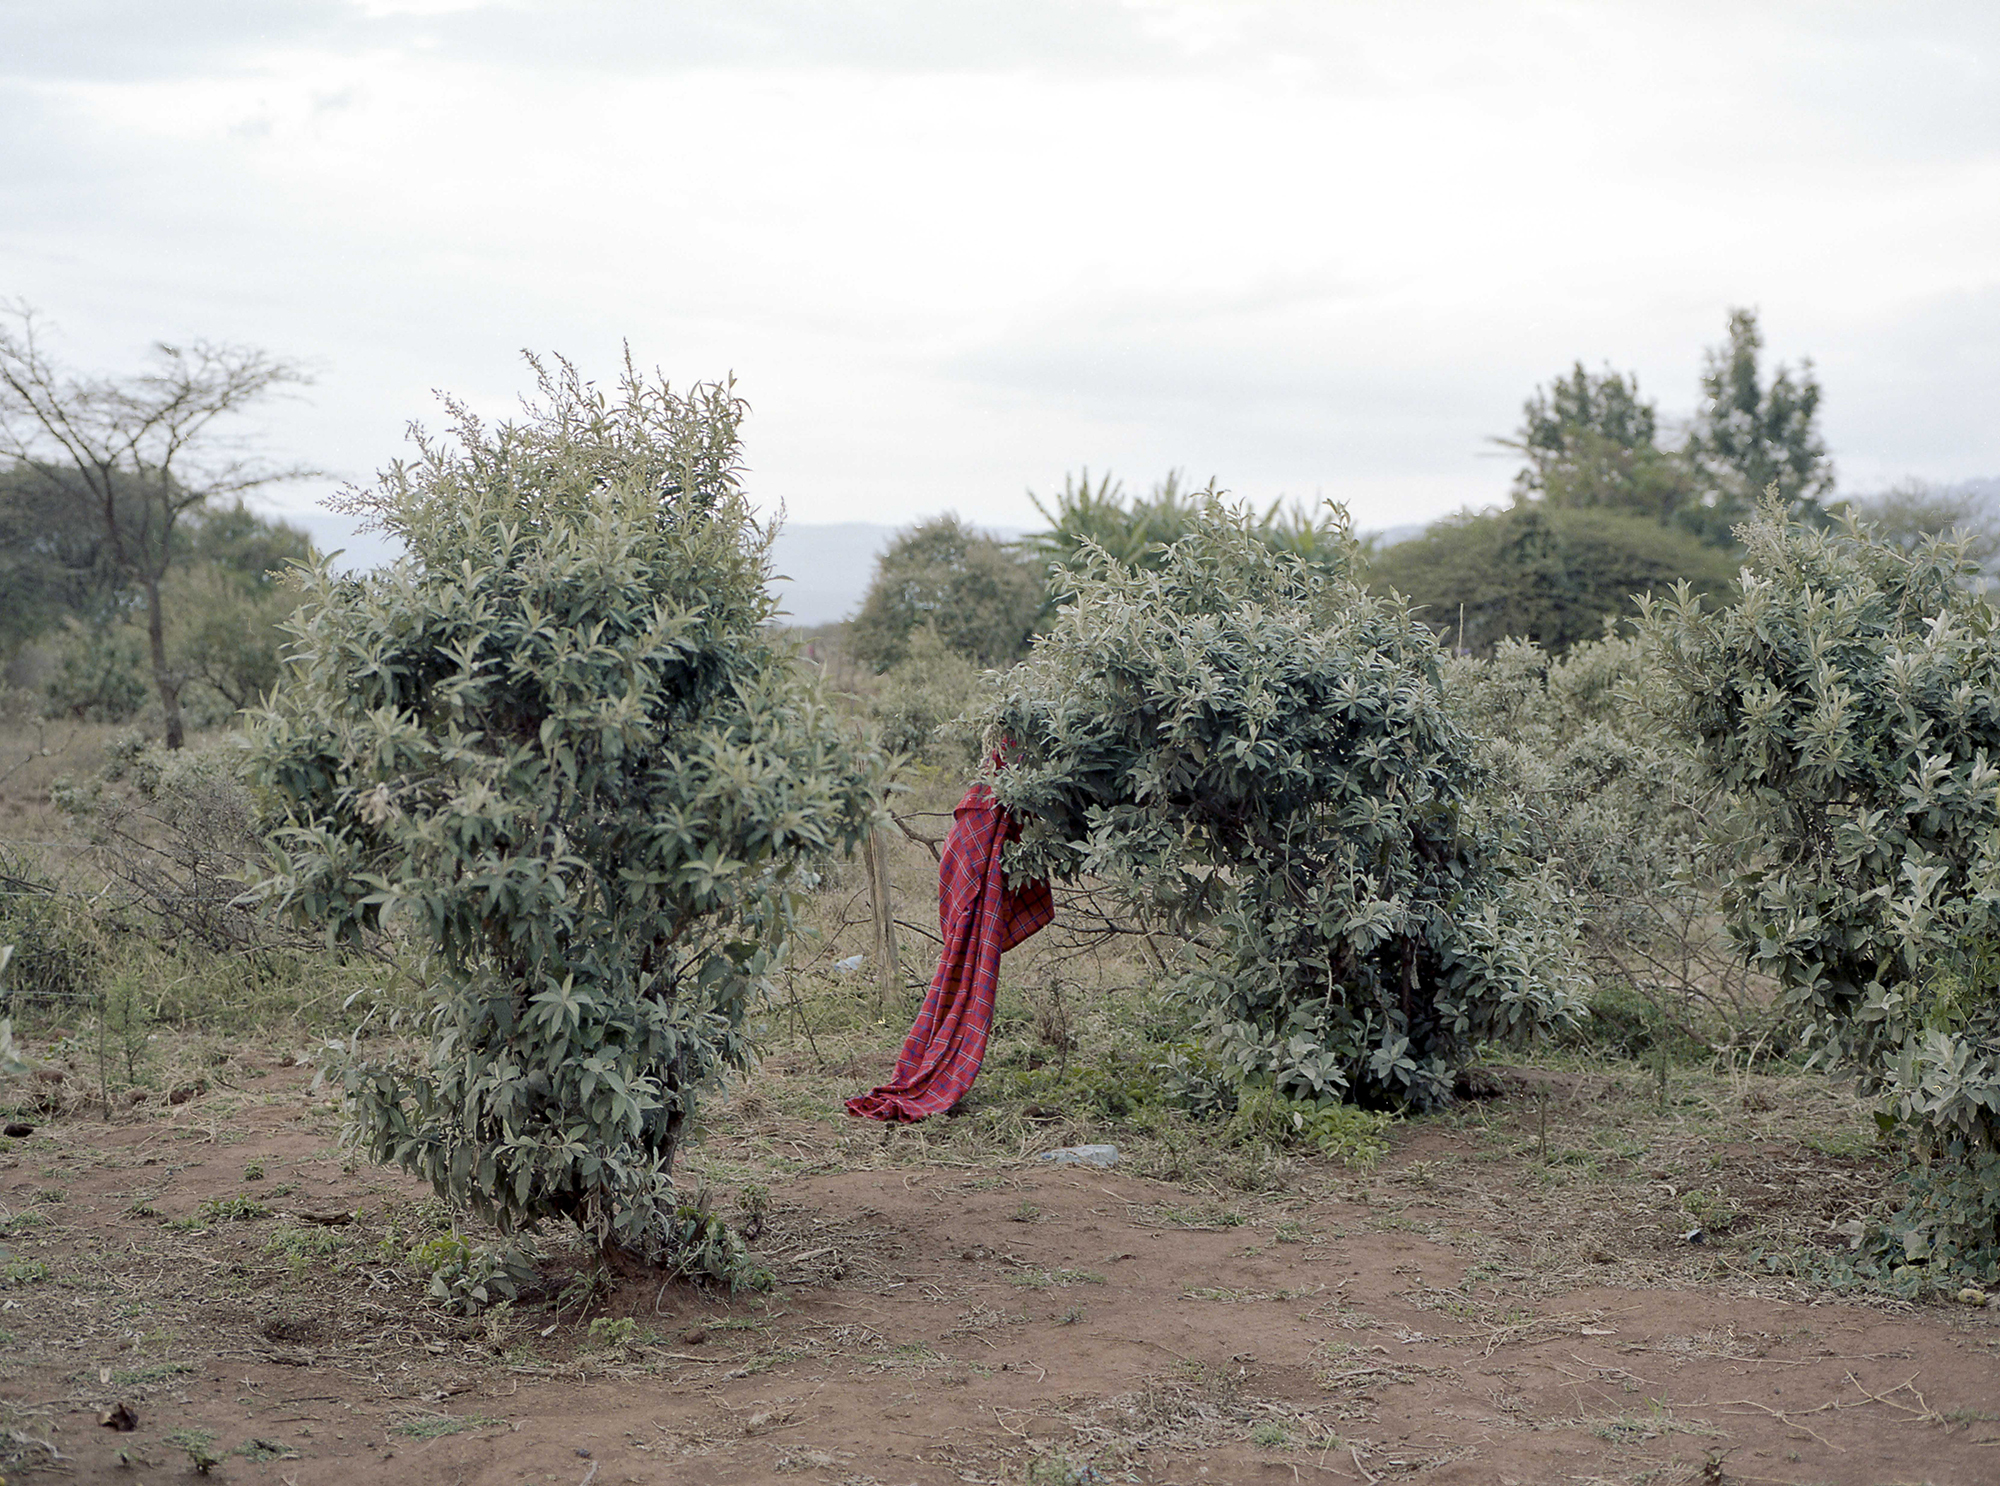 The Last Maasai By Adrien Blondel